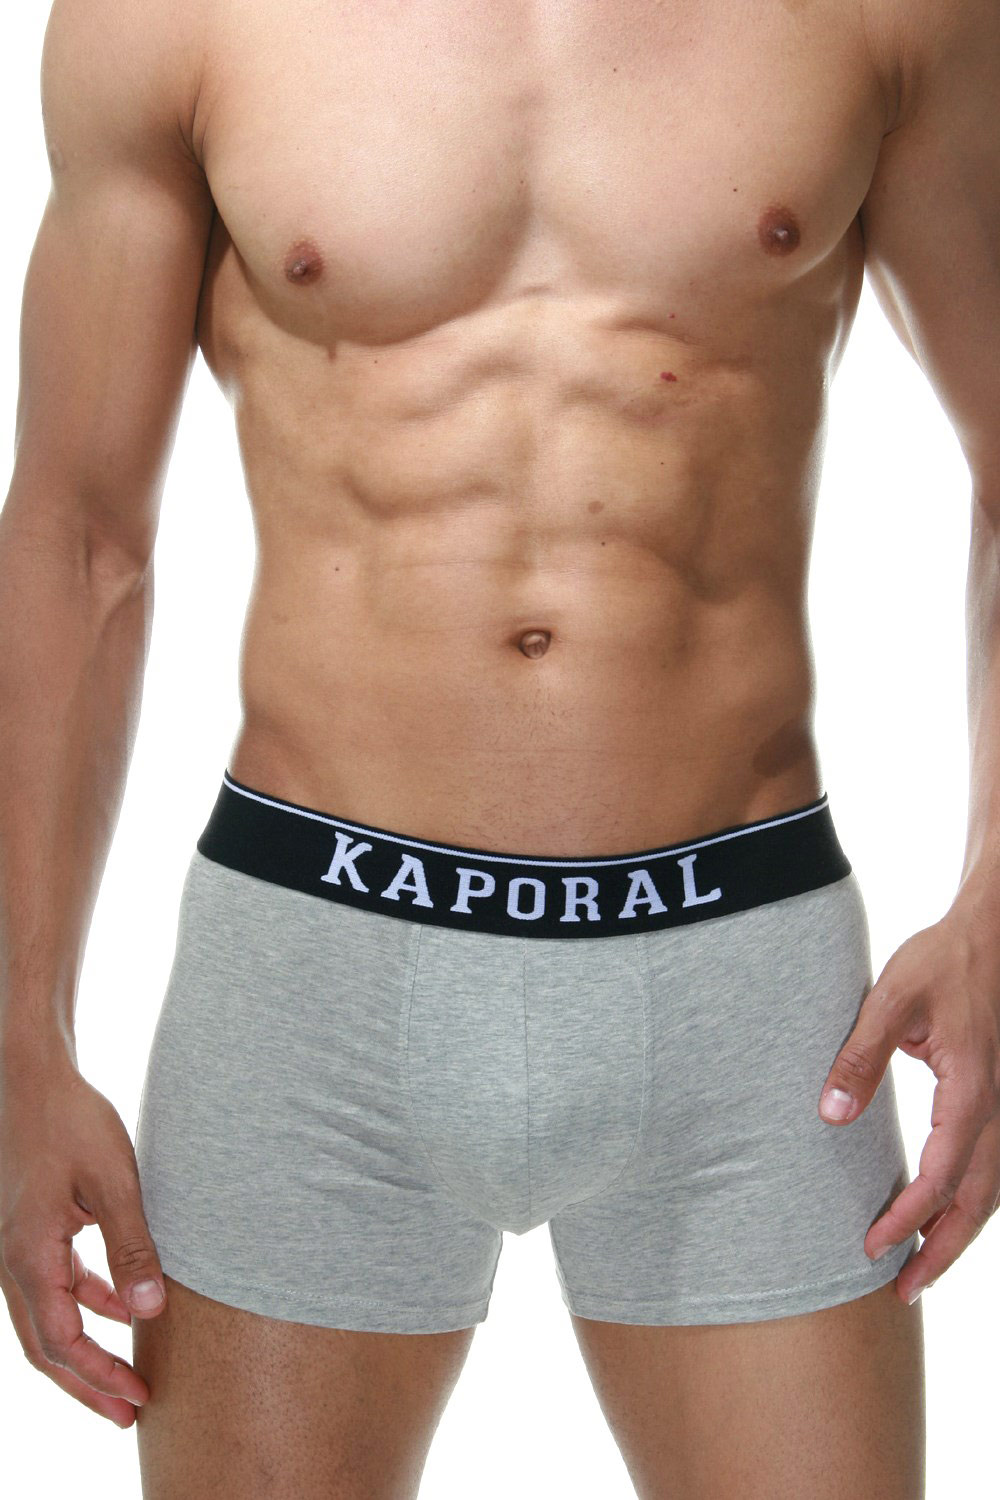 KAPORAL trunks 2 pieces at oboy.com